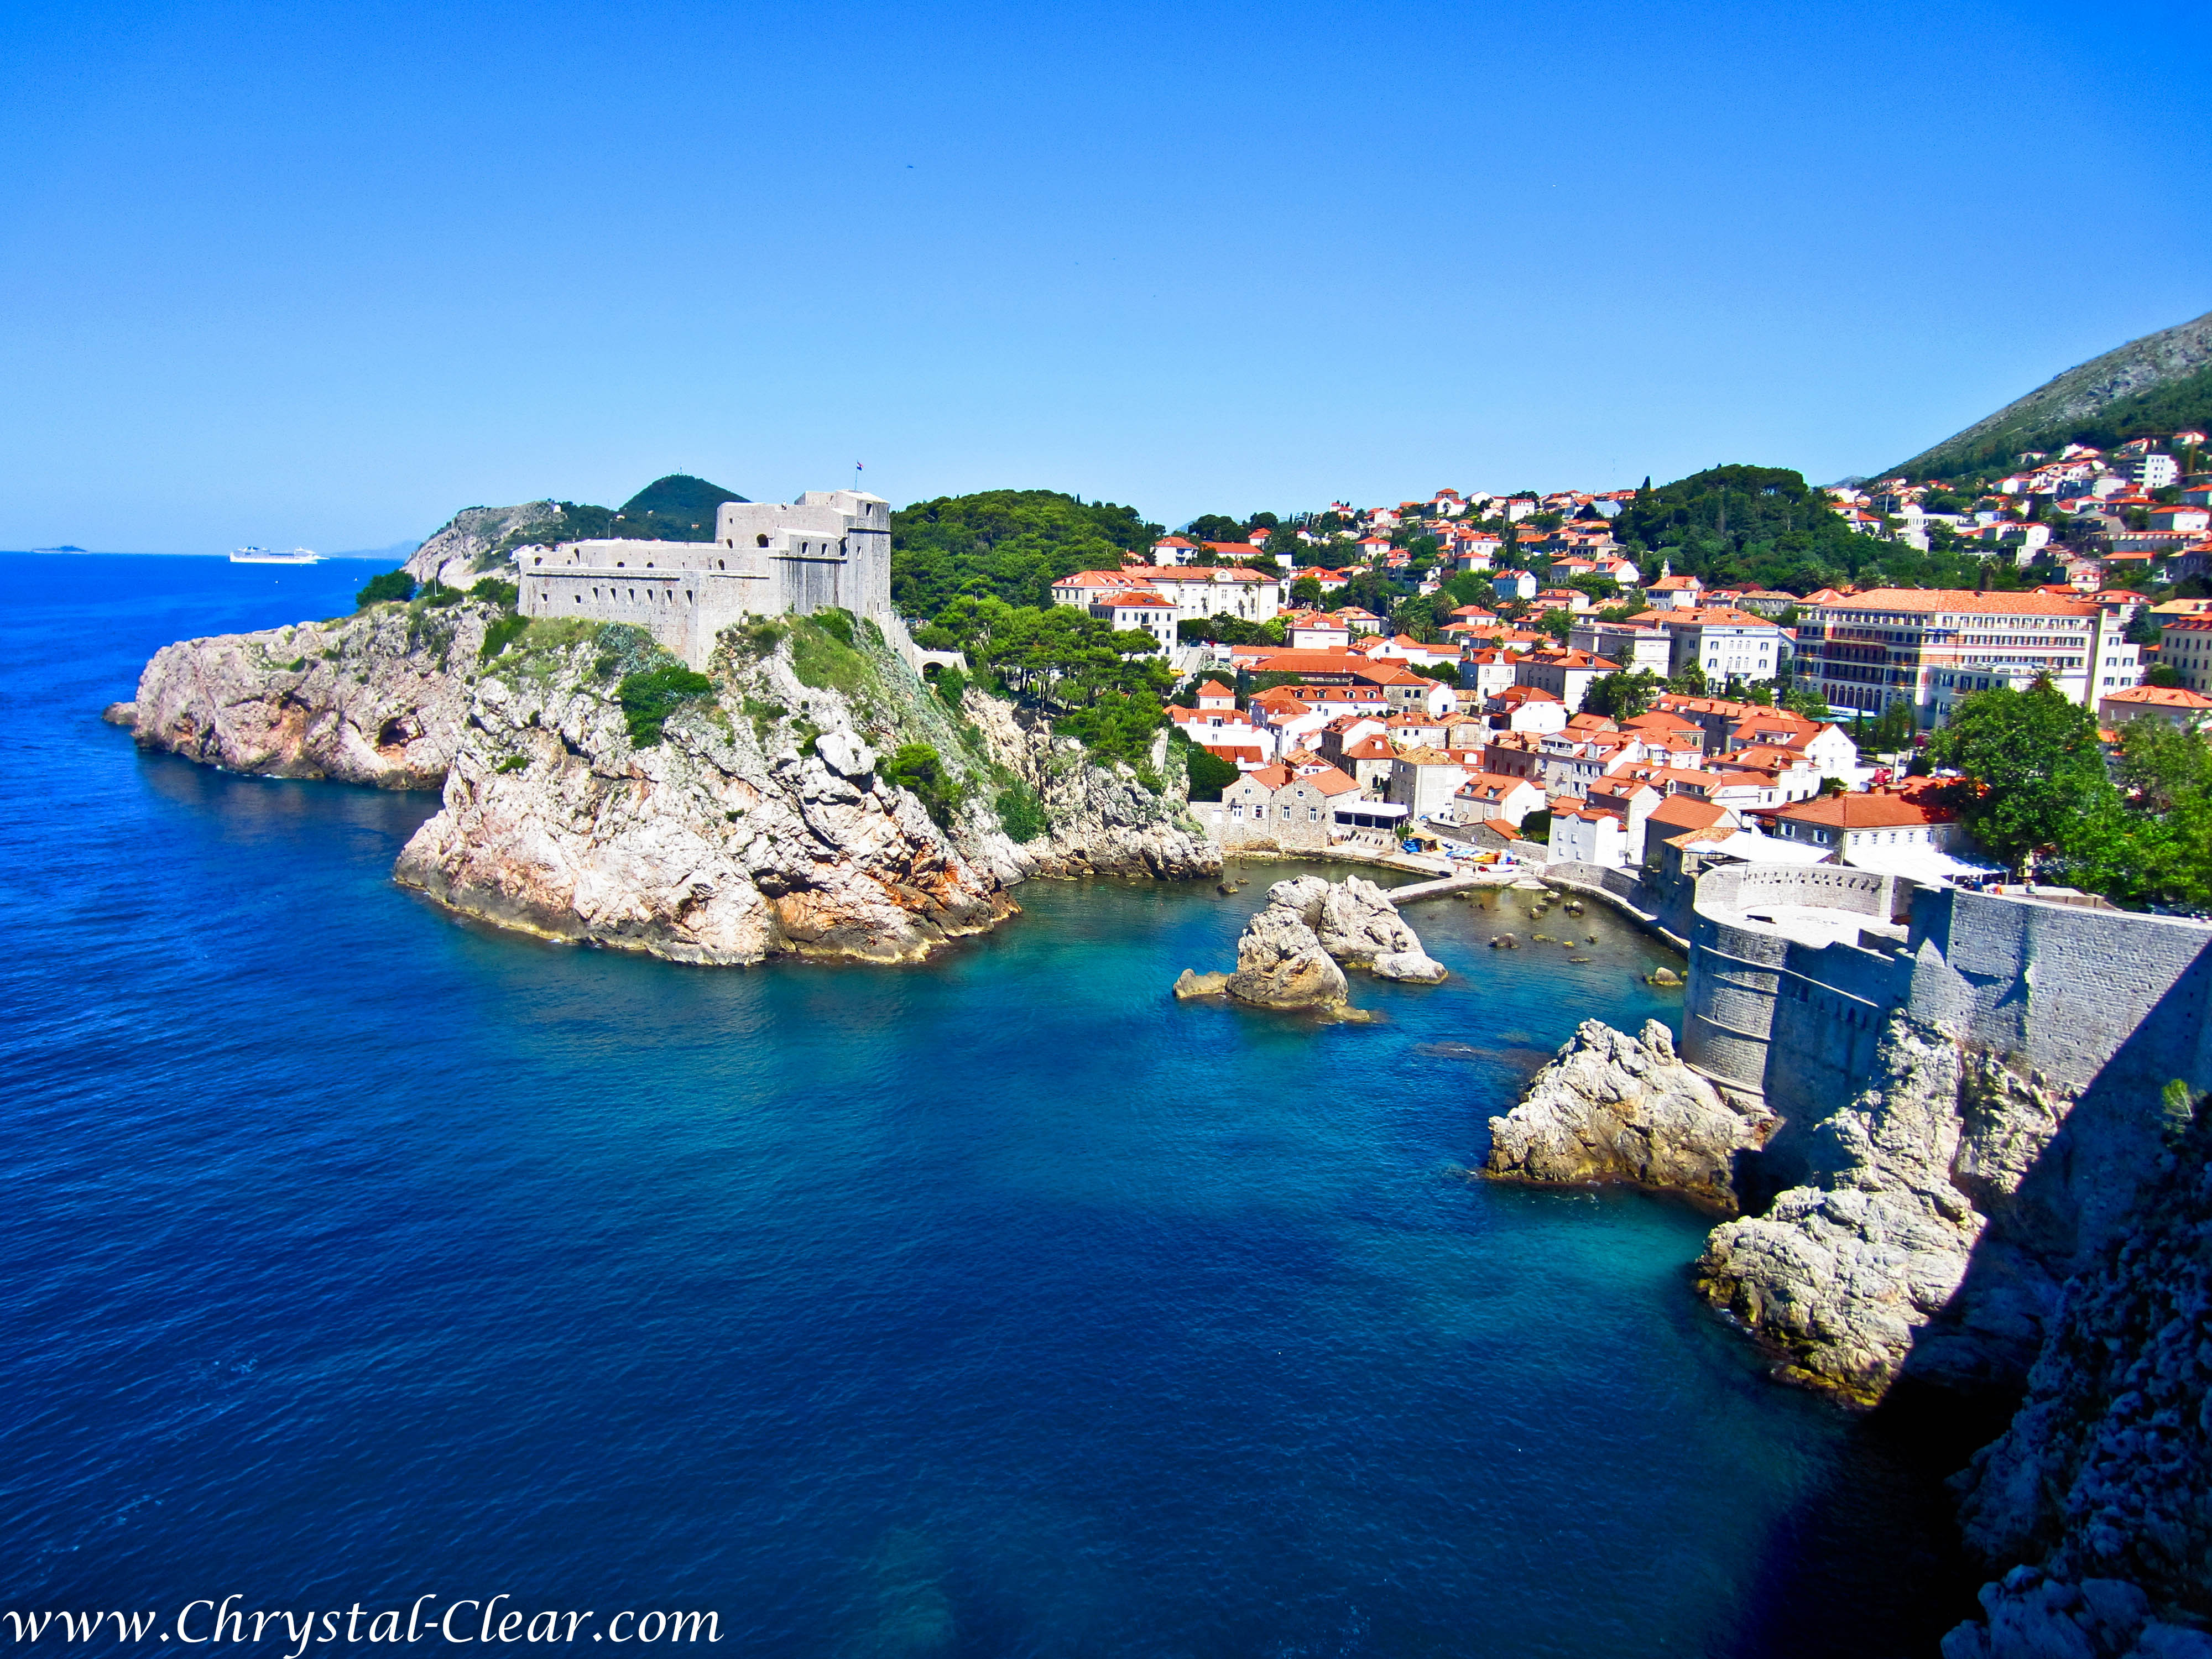 Croatia Dubrovnik Free Download Image HD Desktop Wallpapers